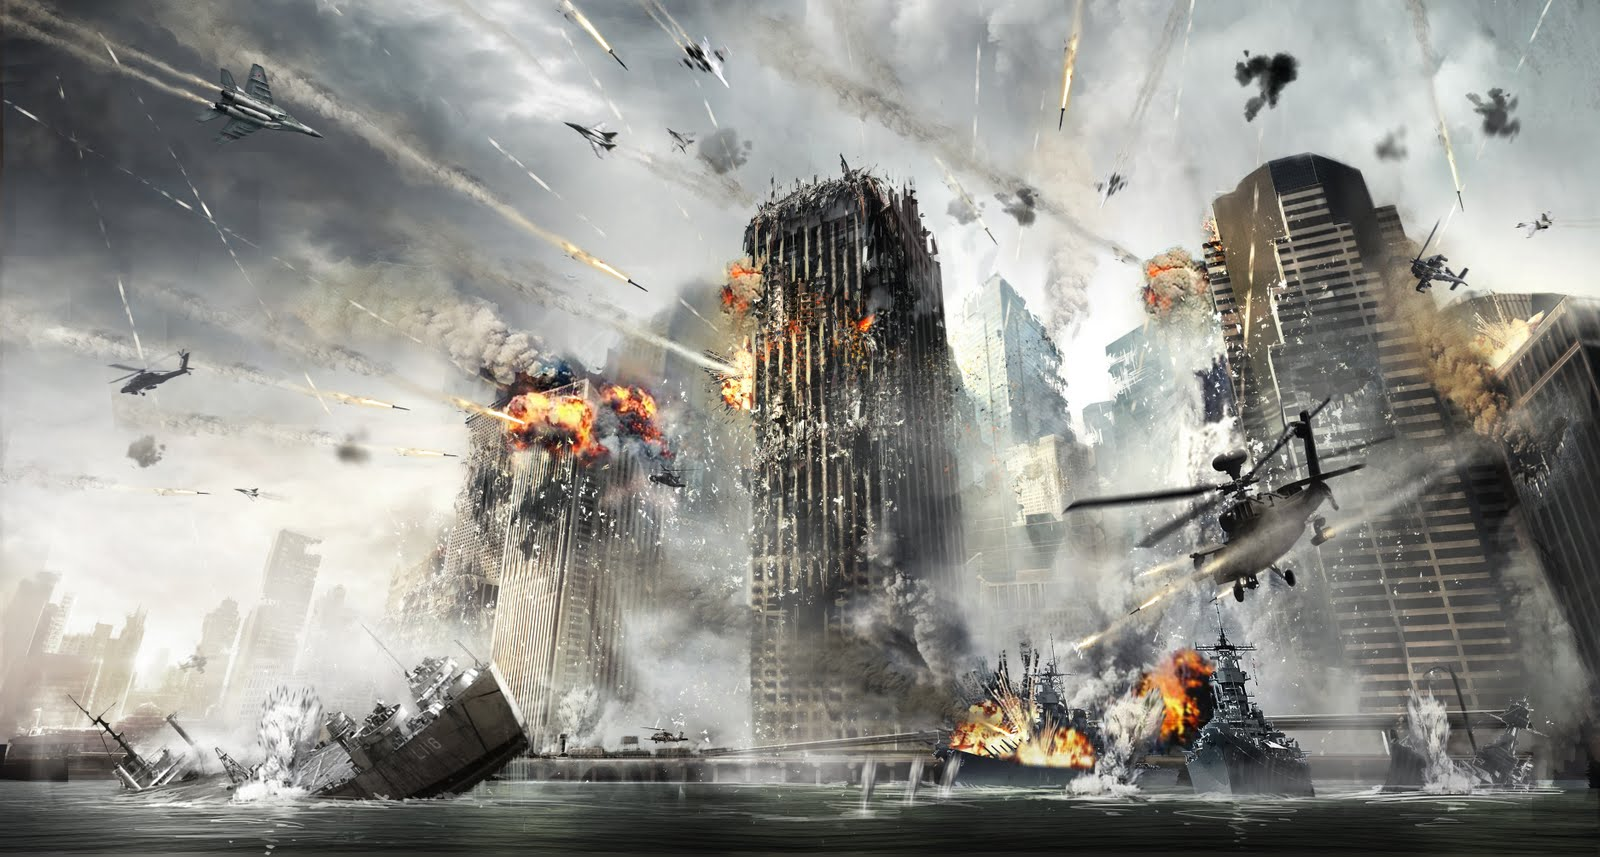 world war iii Joseph v micallef is a best-selling military history and world affairs author, and keynote speaker follow him on twitter @josephvmicallef claims that world war iii has already started.